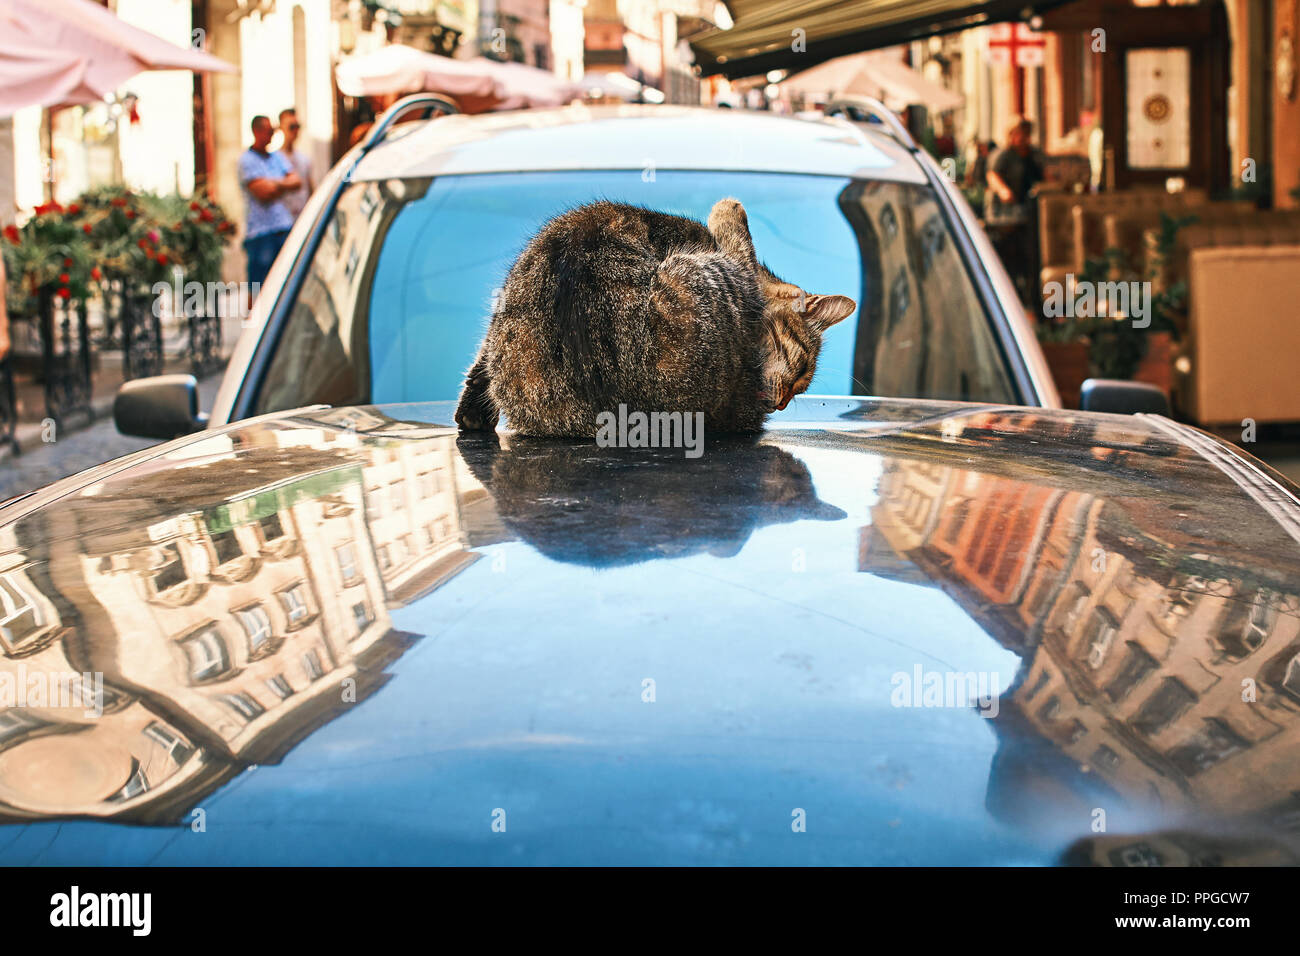 Cat washing itself sitting on an automobile roof in the old historical European city center - Stock Image